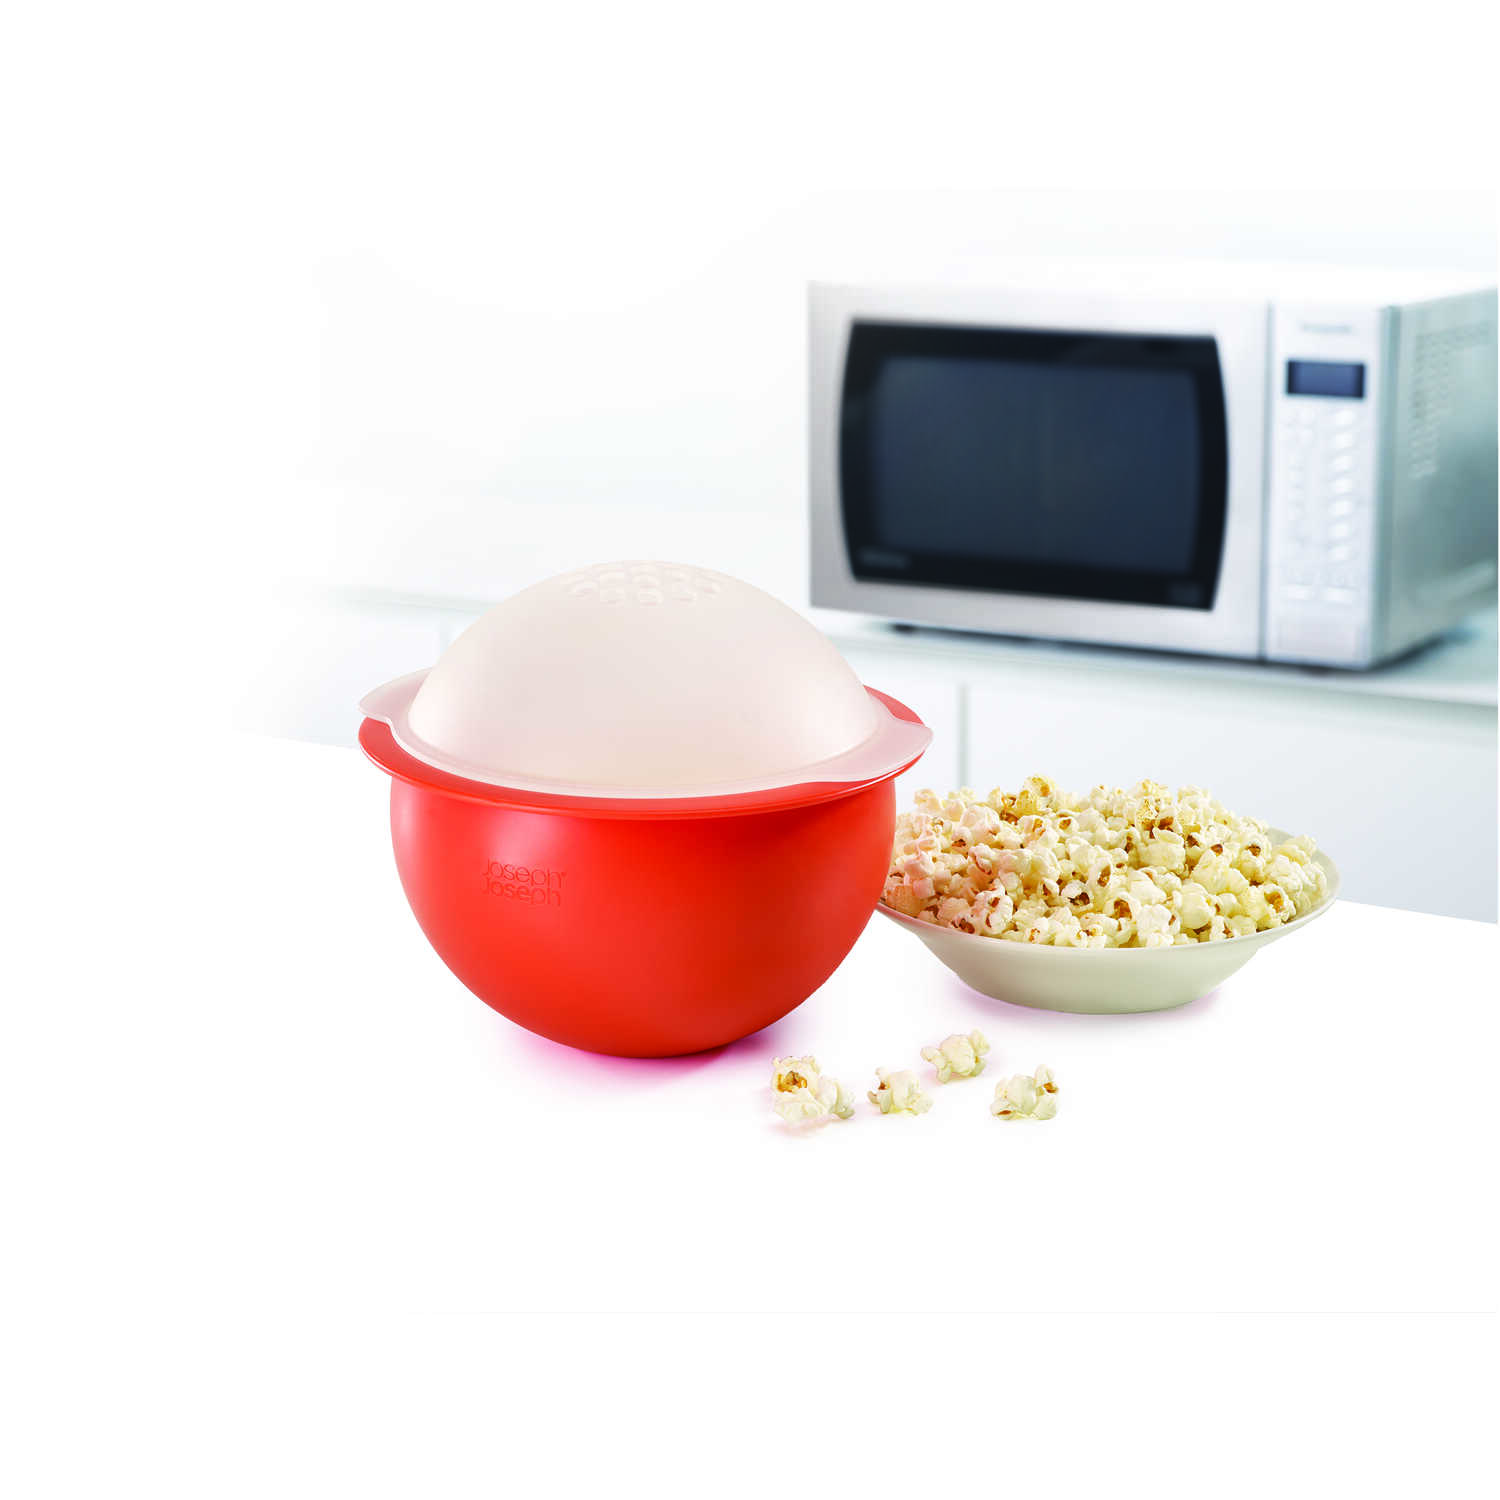 Joseph Joseph  M-Cuisine  Orange  Air  Microwave Popcorn Popper